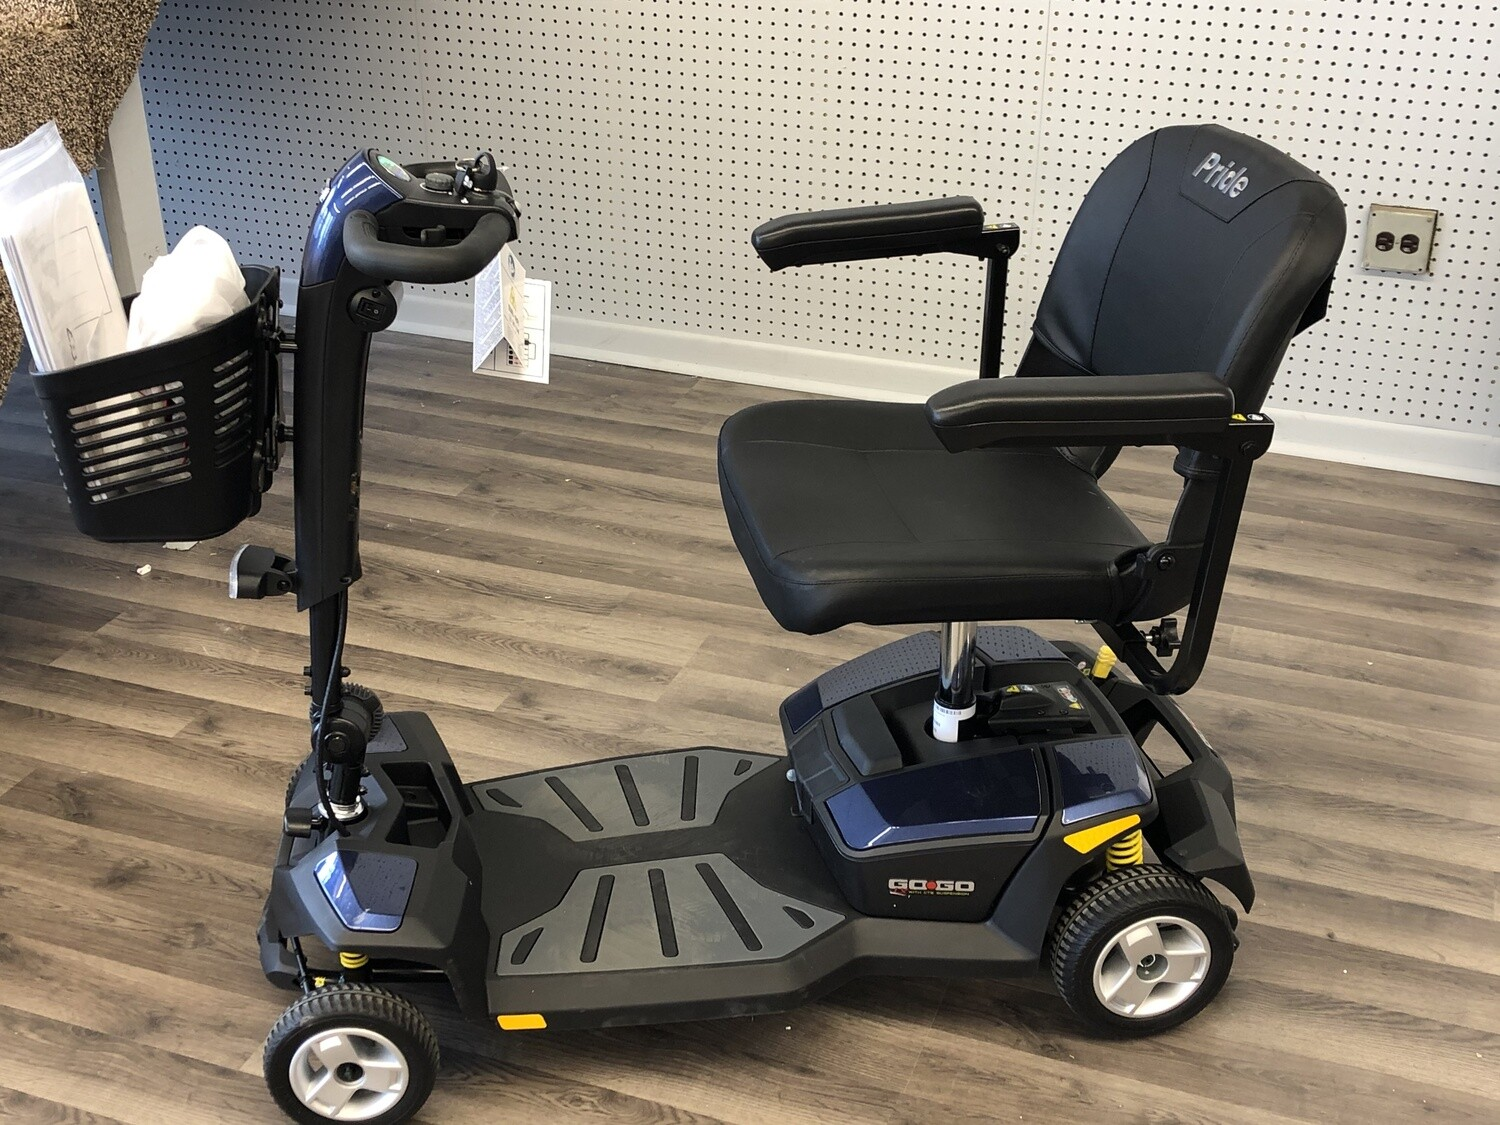 The Go Go LX CTS 4 wheel Scooter